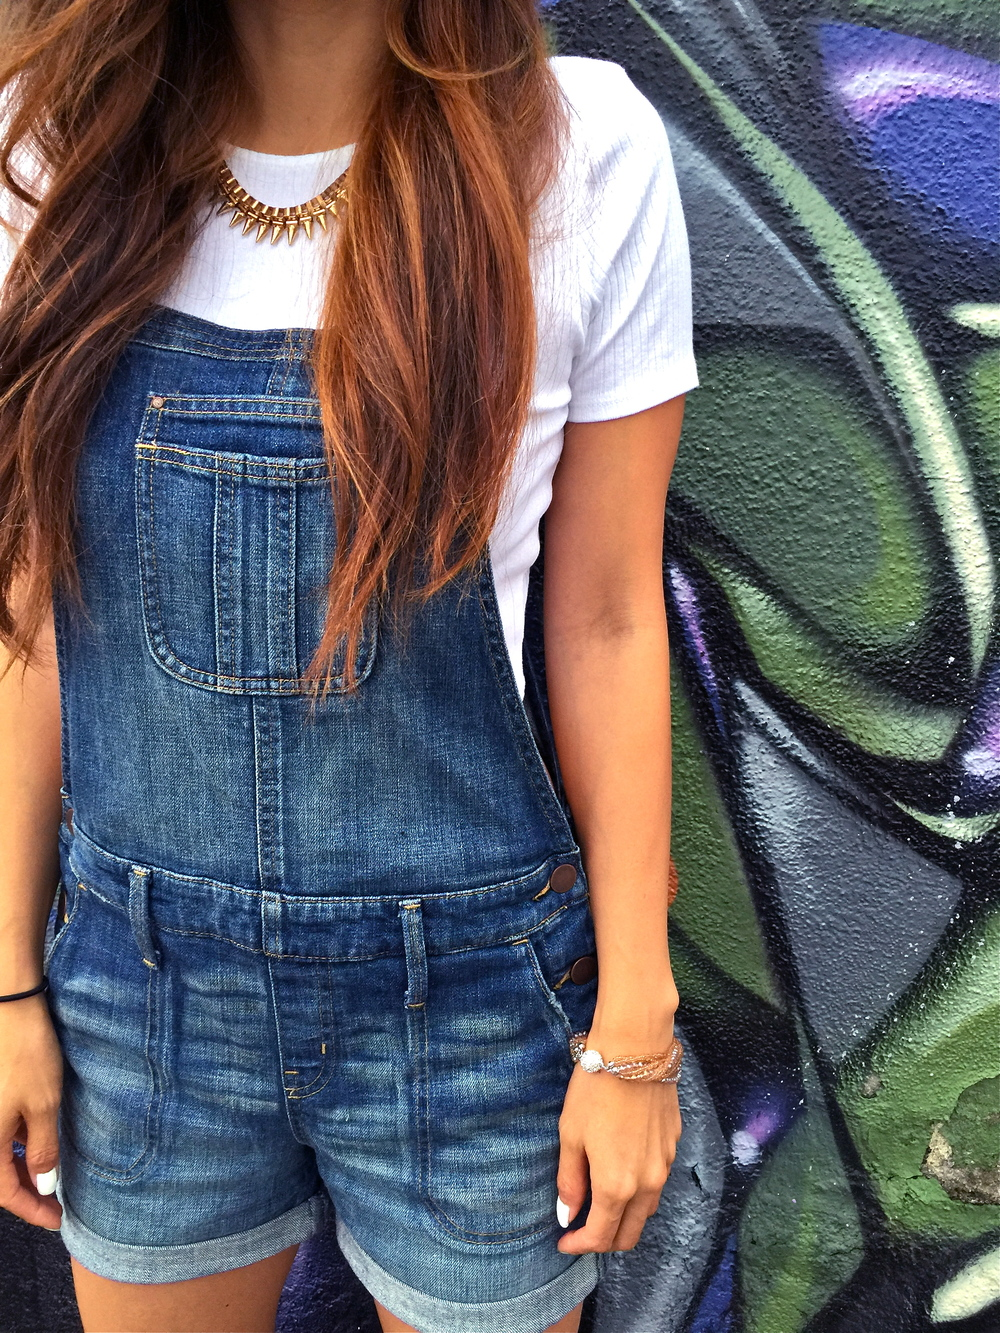 denim overall shorts and top shop crop top